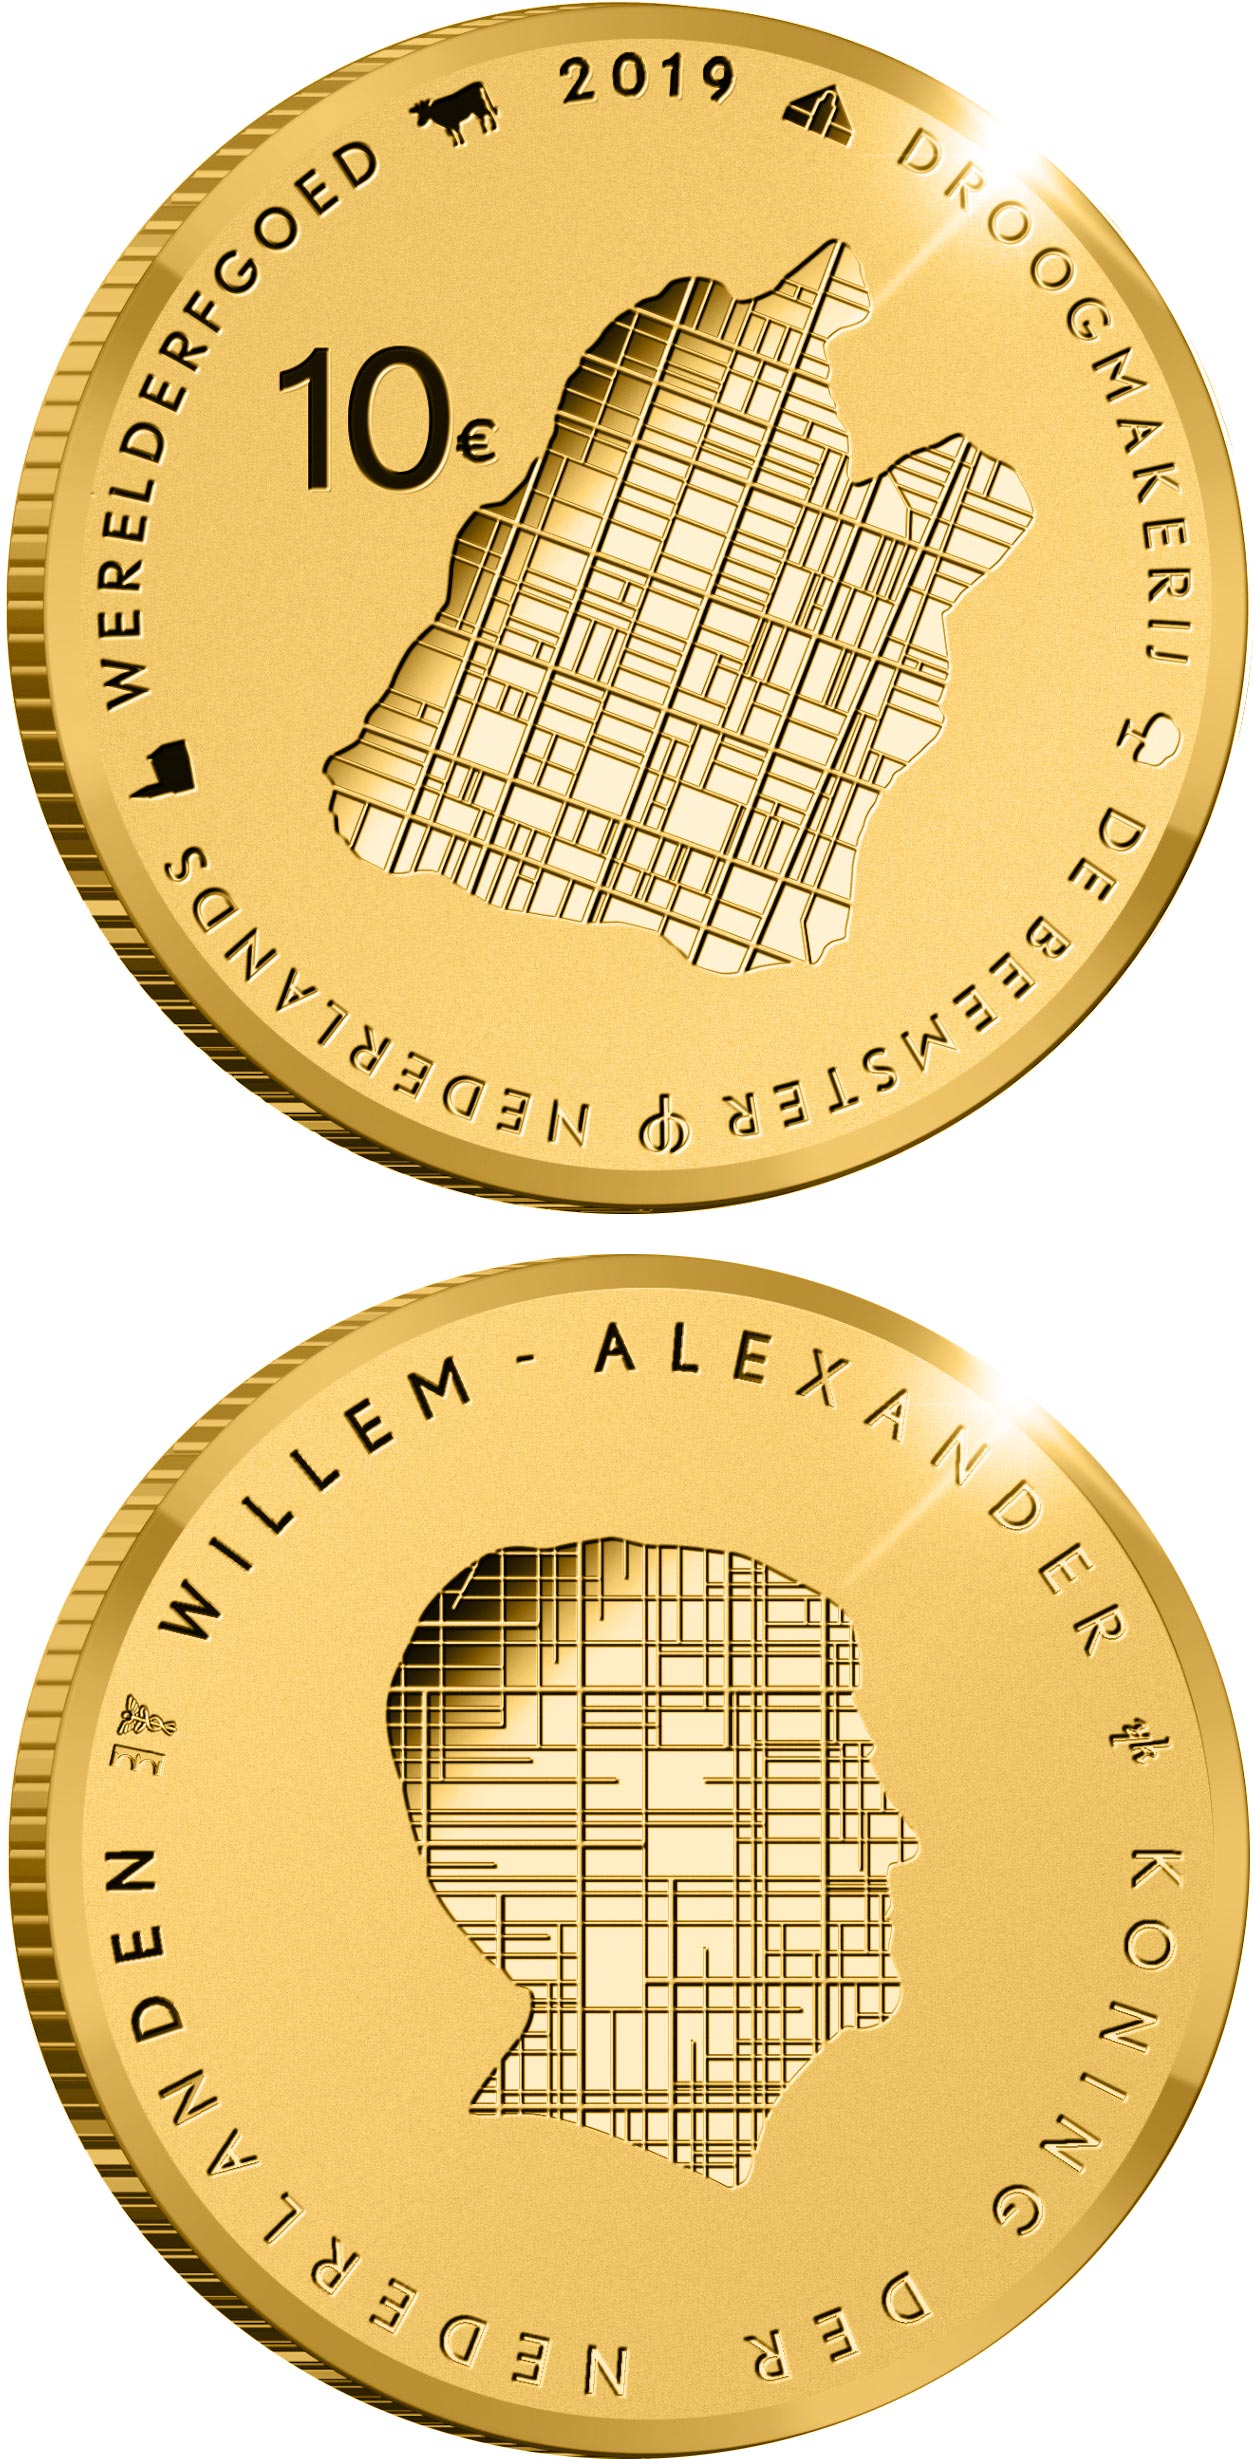 Image of 10 euro coin - Beemster | Netherlands 2019.  The Gold coin is of Proof quality.